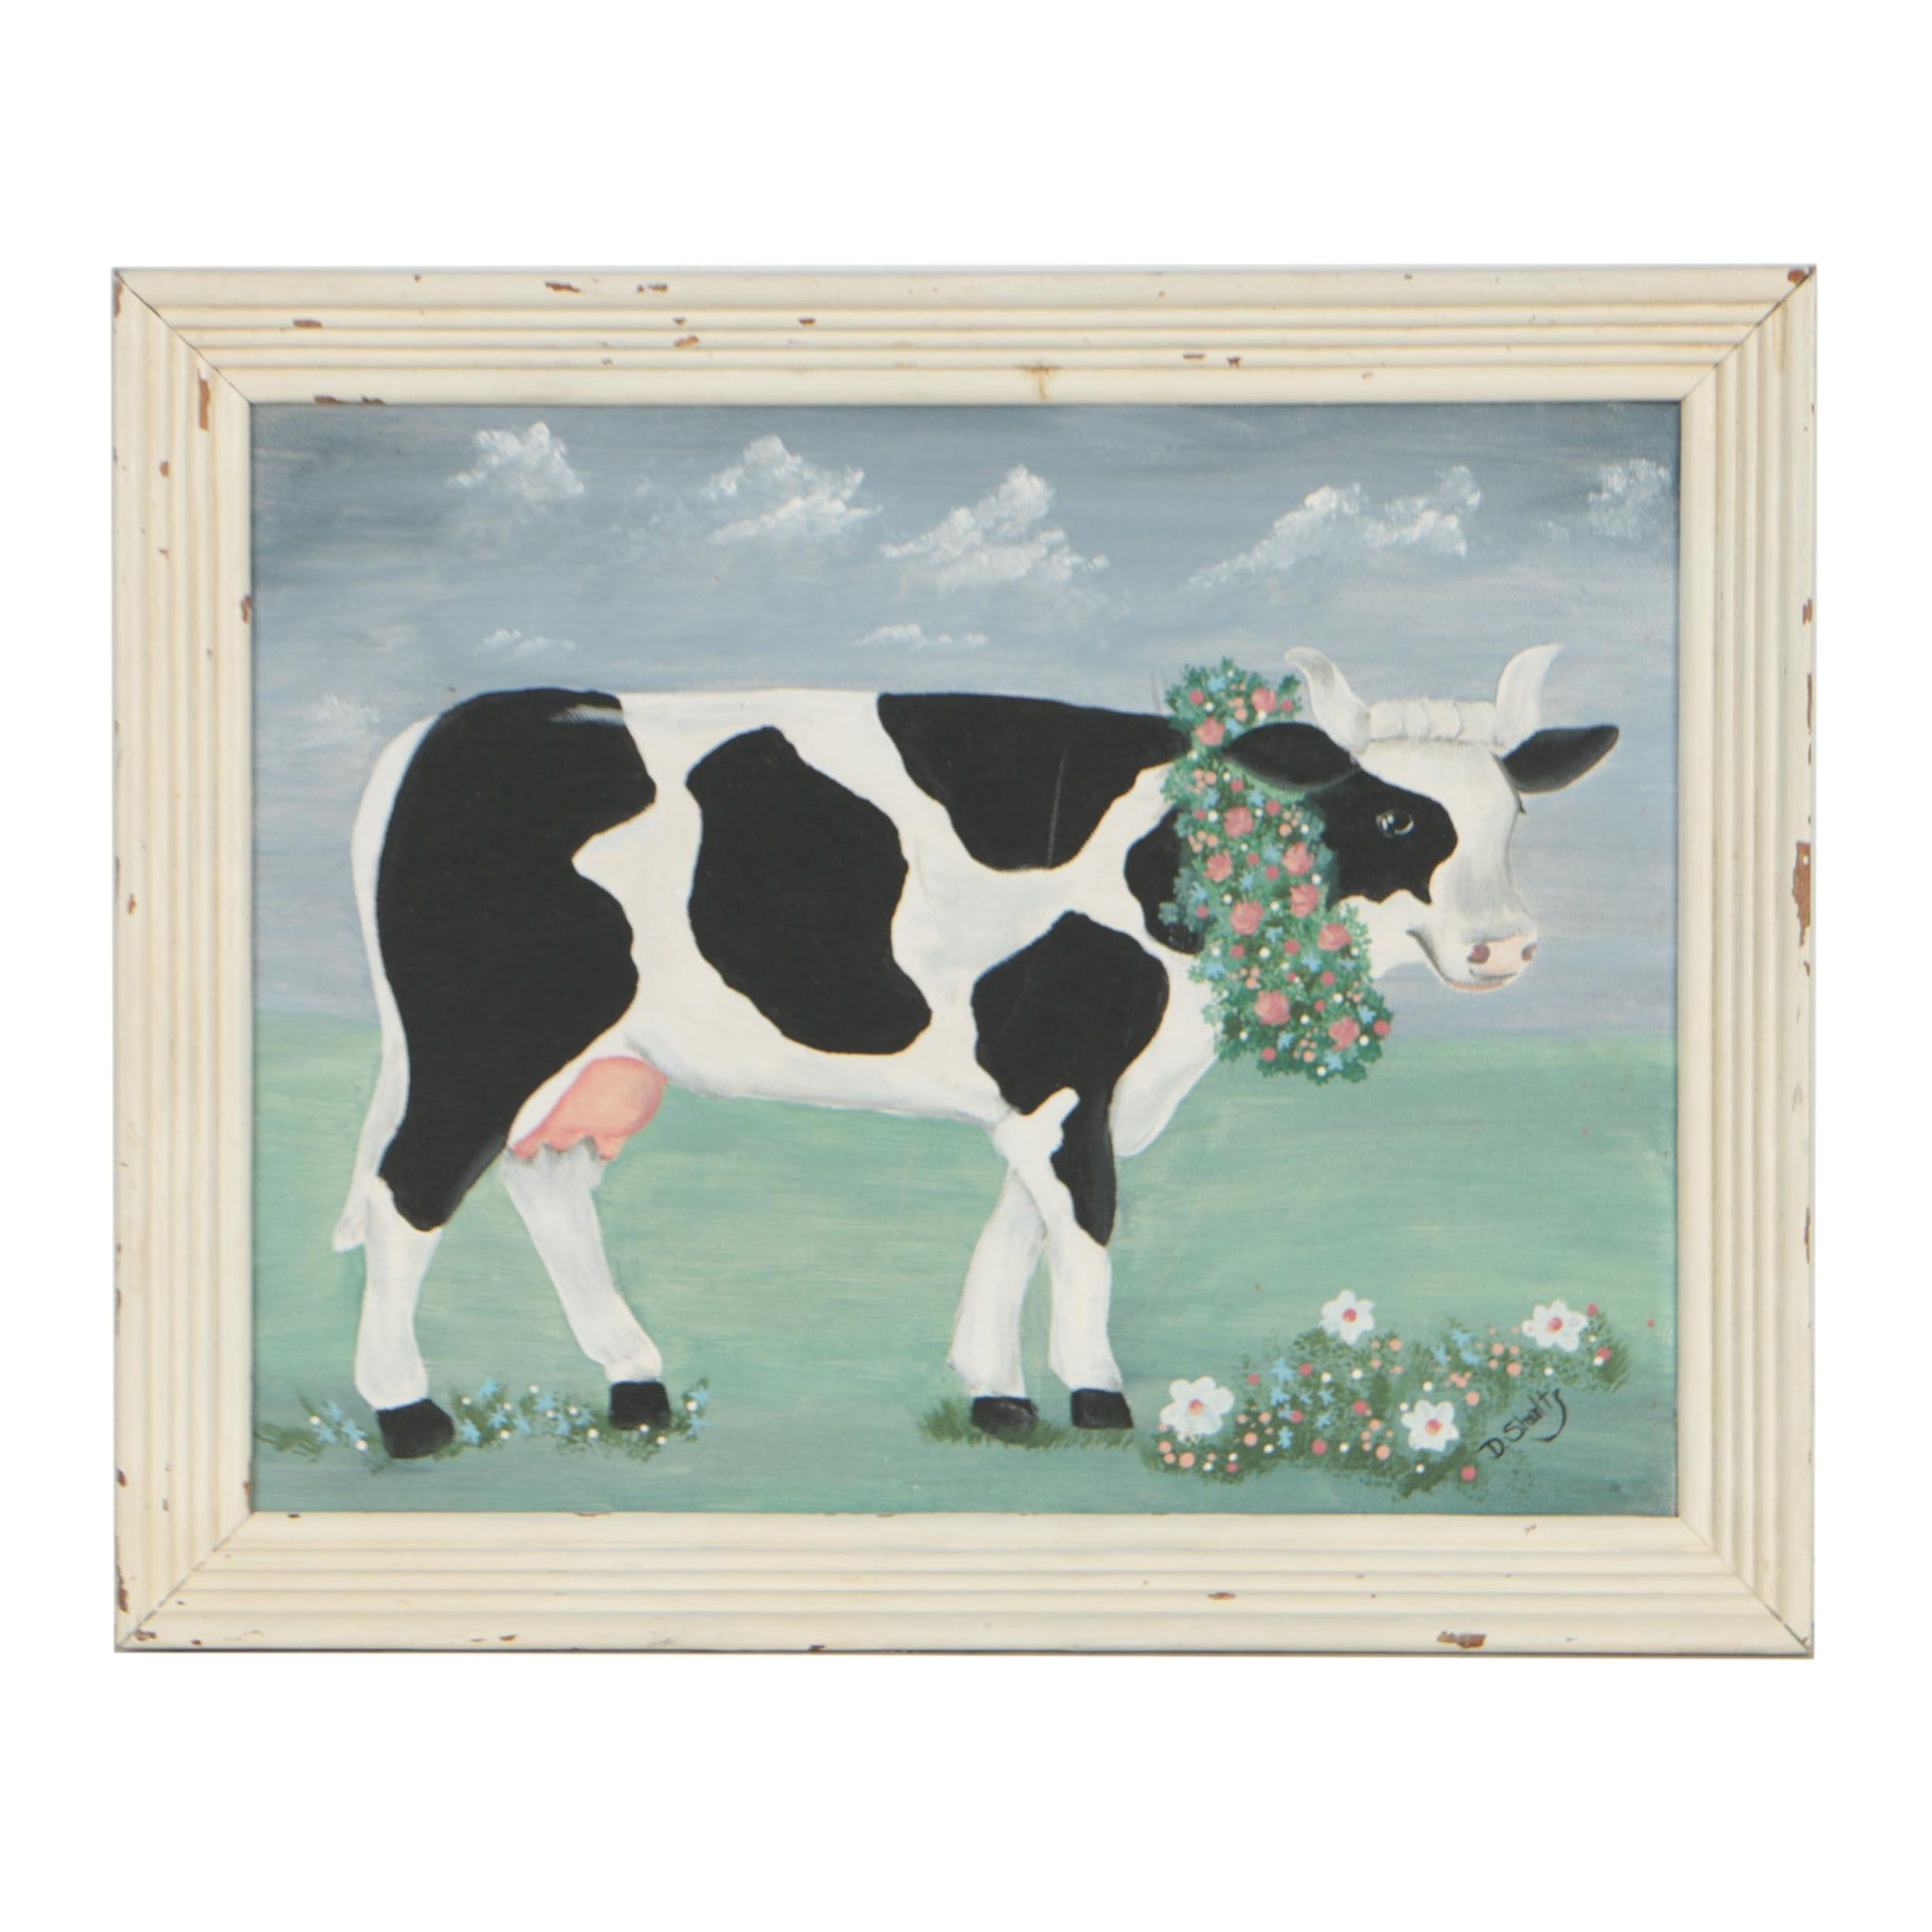 "D. Schultz Acrylic Painting ""Country Cow"", Late 20th Century"